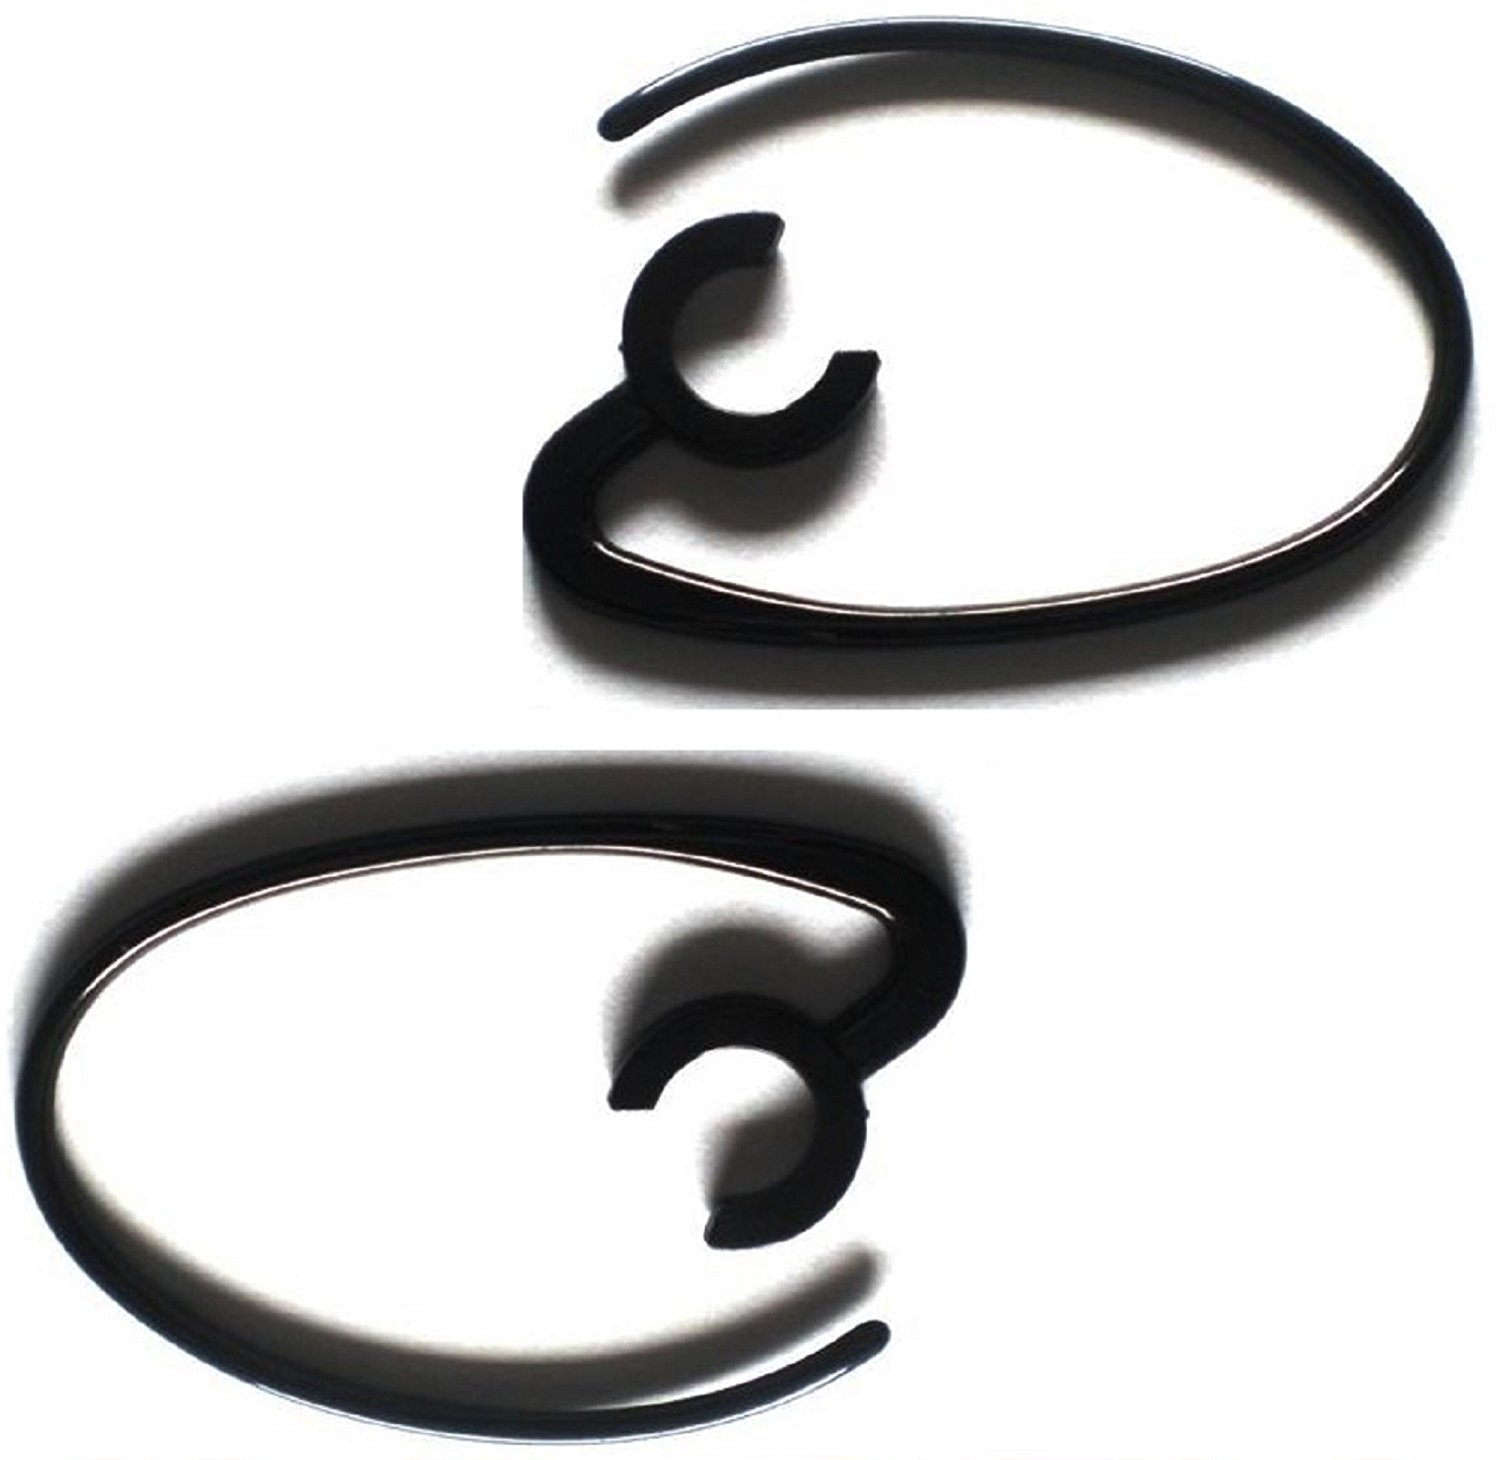 Buy 3 Earhooks For Blackberry Hs700 Hs500 Hs300 Hs 700 Hs 500 Hs 300 Wireless Bluetooth Headset Headsets Ear Hooks Loops Clips Stabilizers Earloops Earclips Replacement Parts In Cheap Price On M Alibaba Com